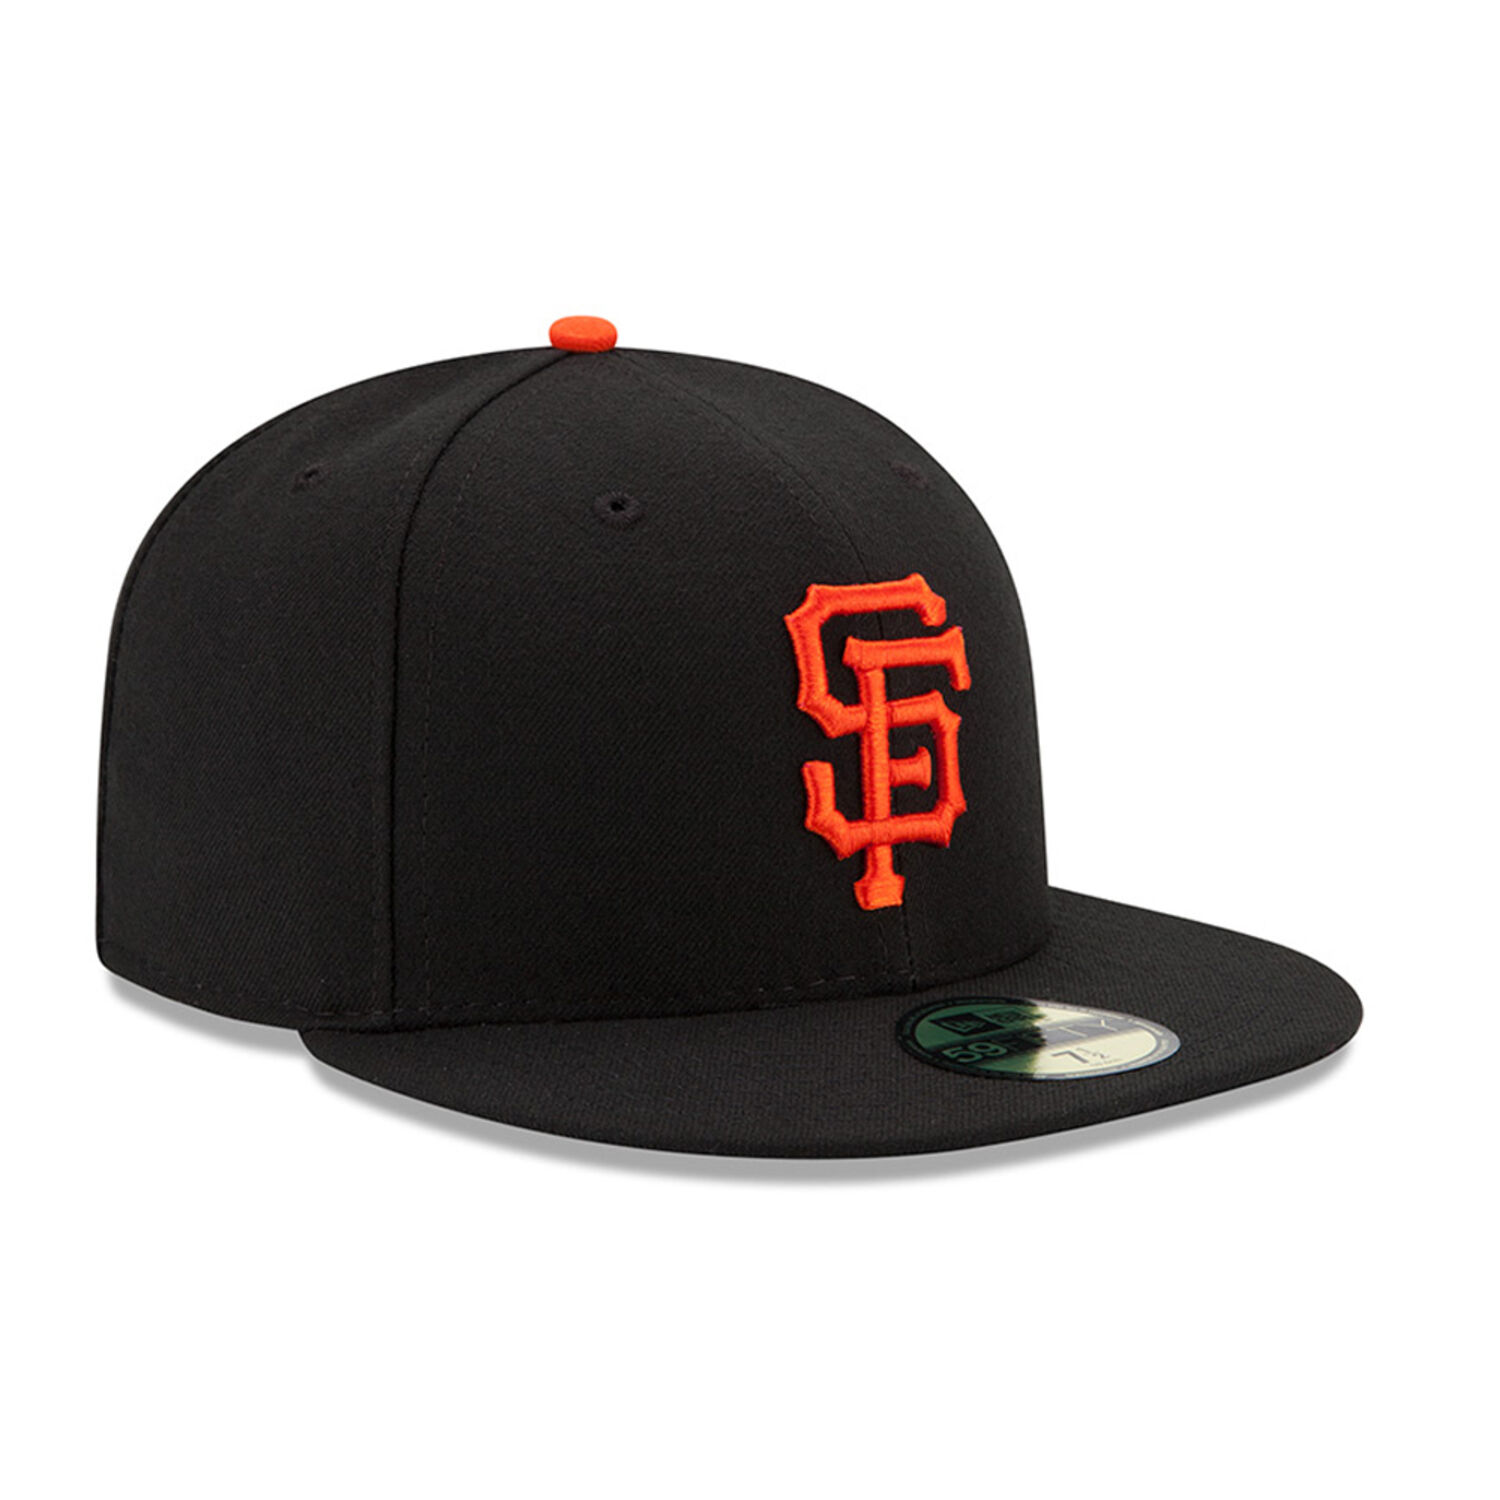 New Era 59FIFTY Cap San Francisco Giants Authentic On-Field Game MLB ... 31eb63bf5e6